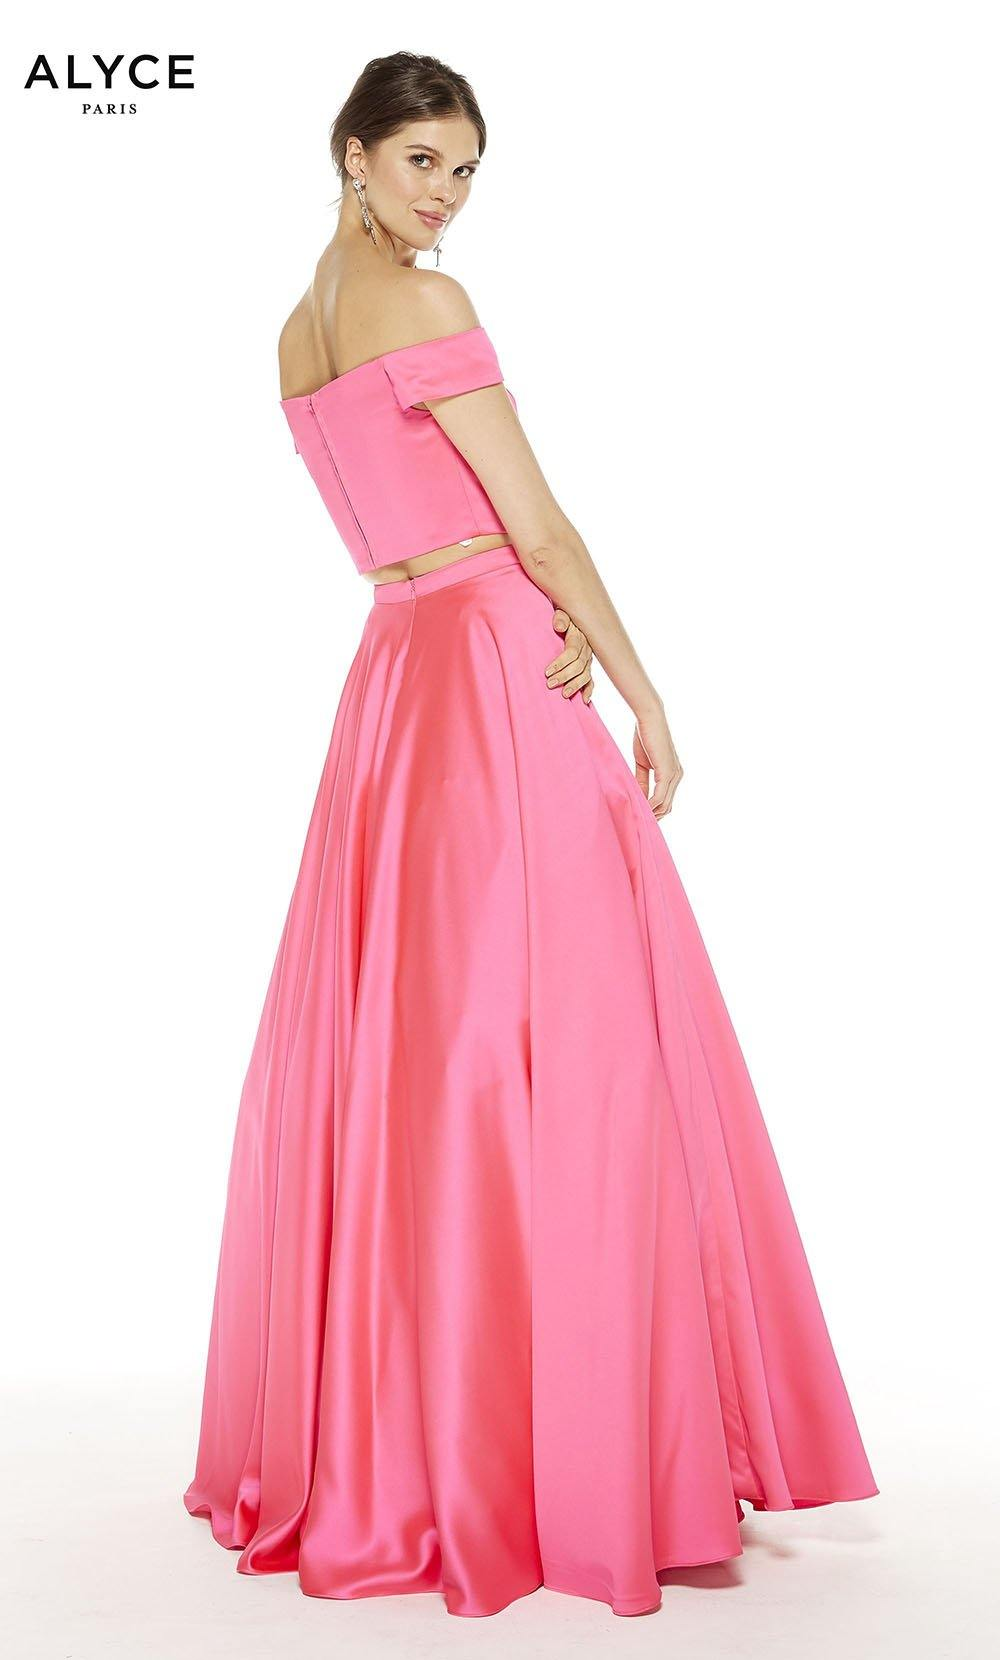 Barbie Pink satin off the shoulder two piece prom dress